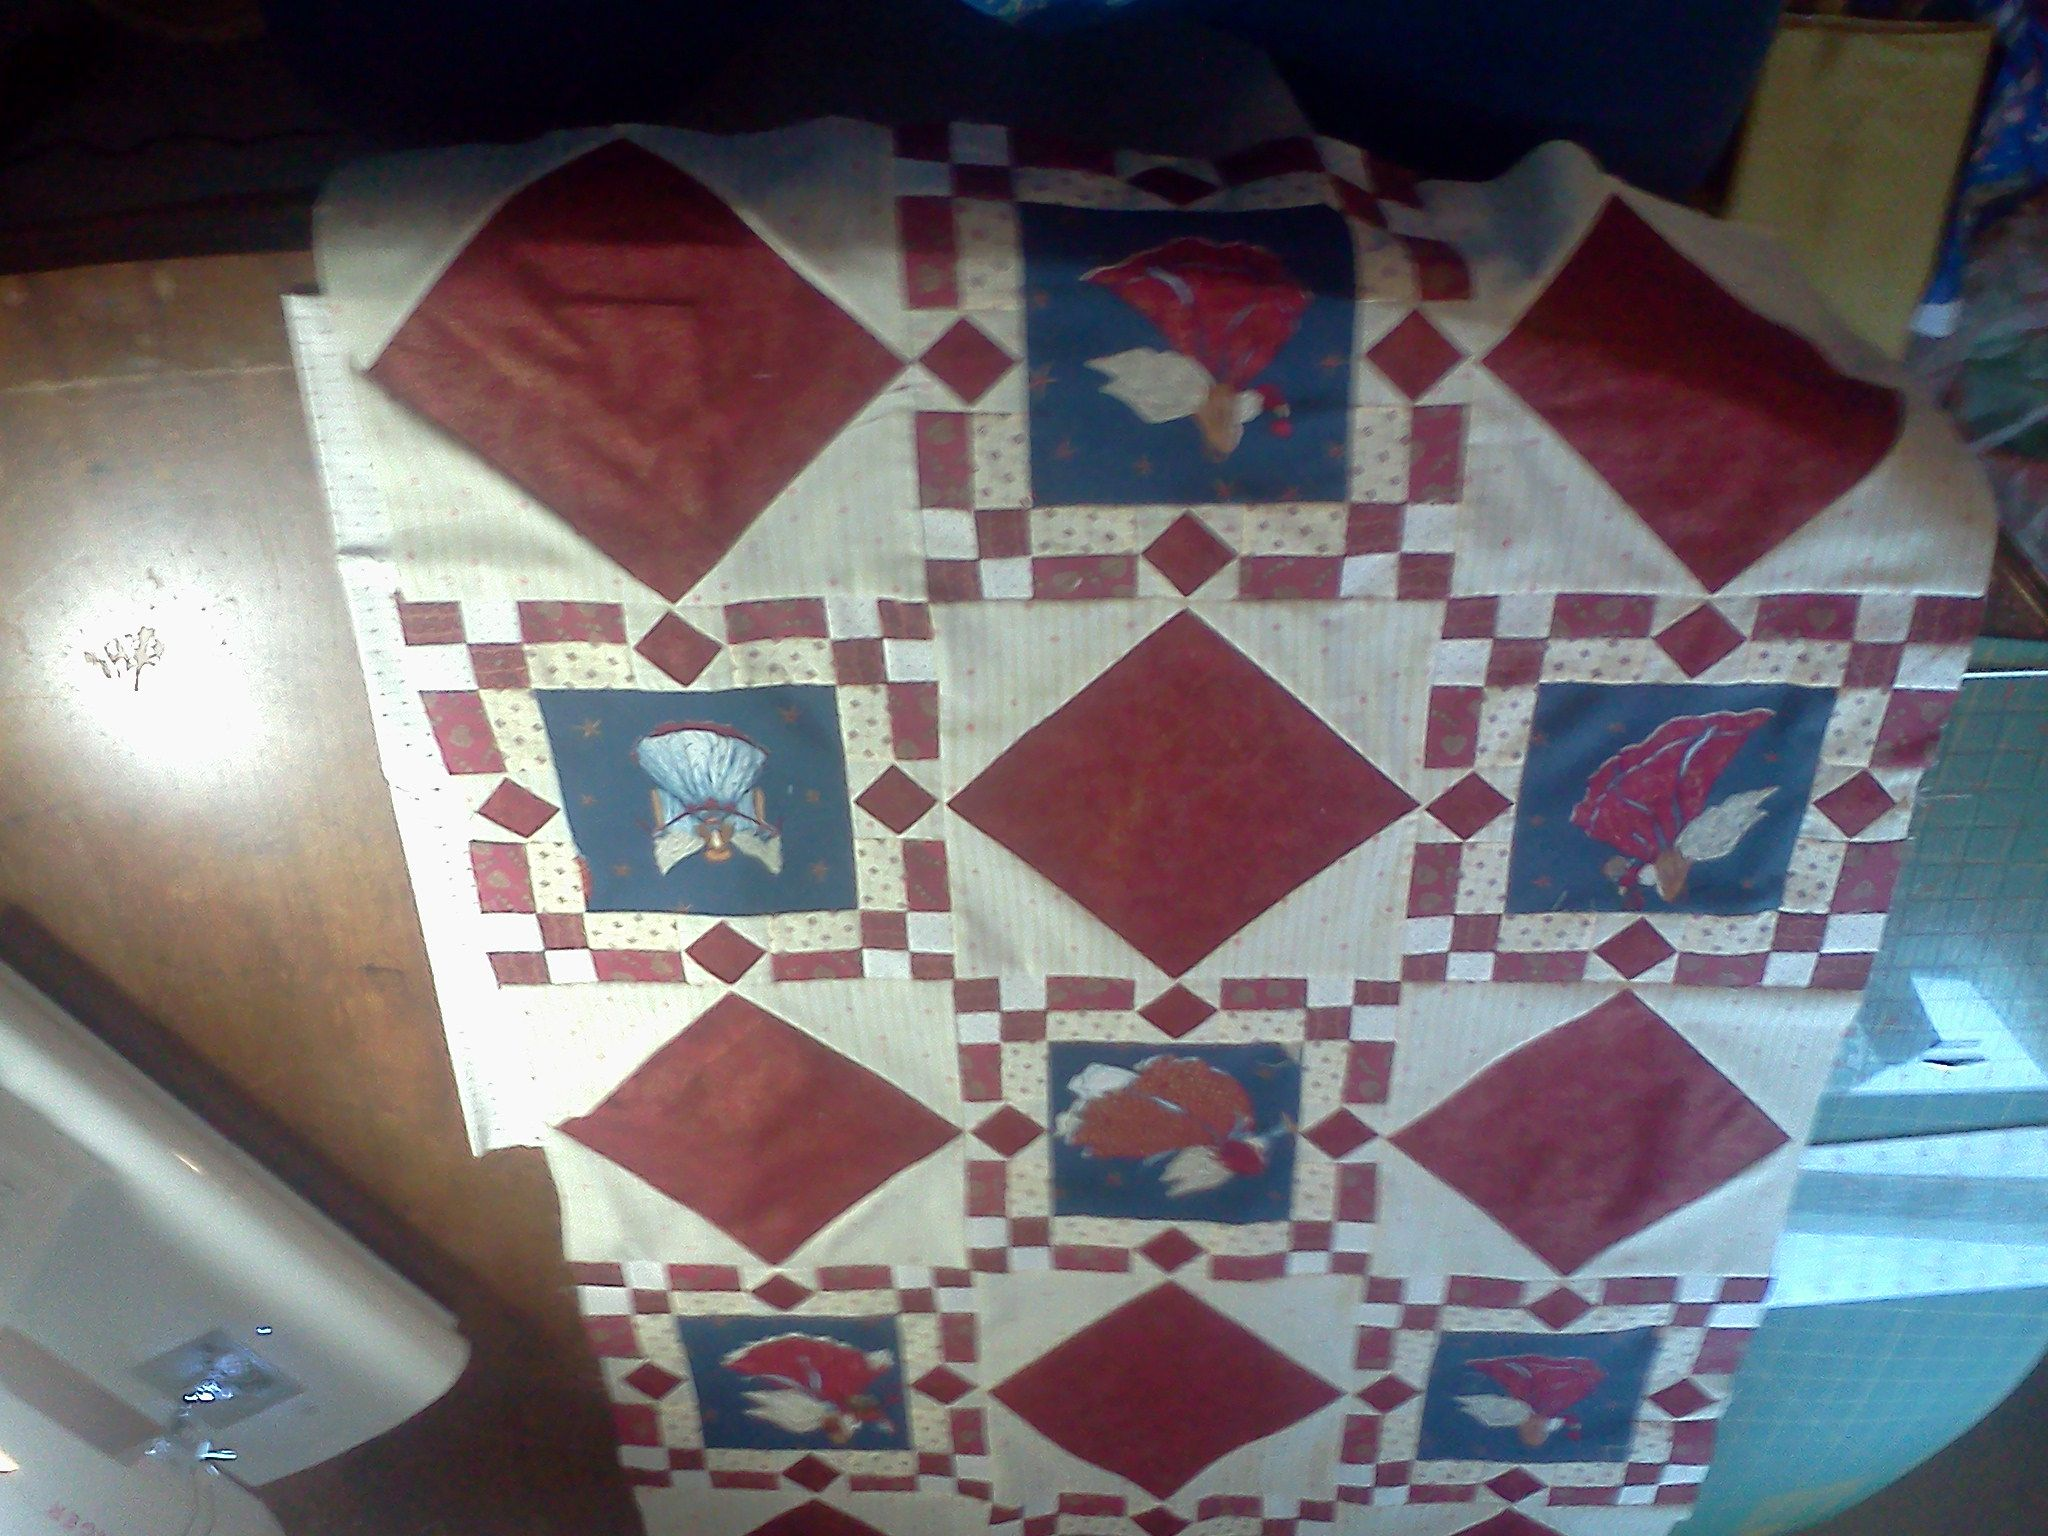 Angel quilt for my husband. He requested it. He loves Angels.